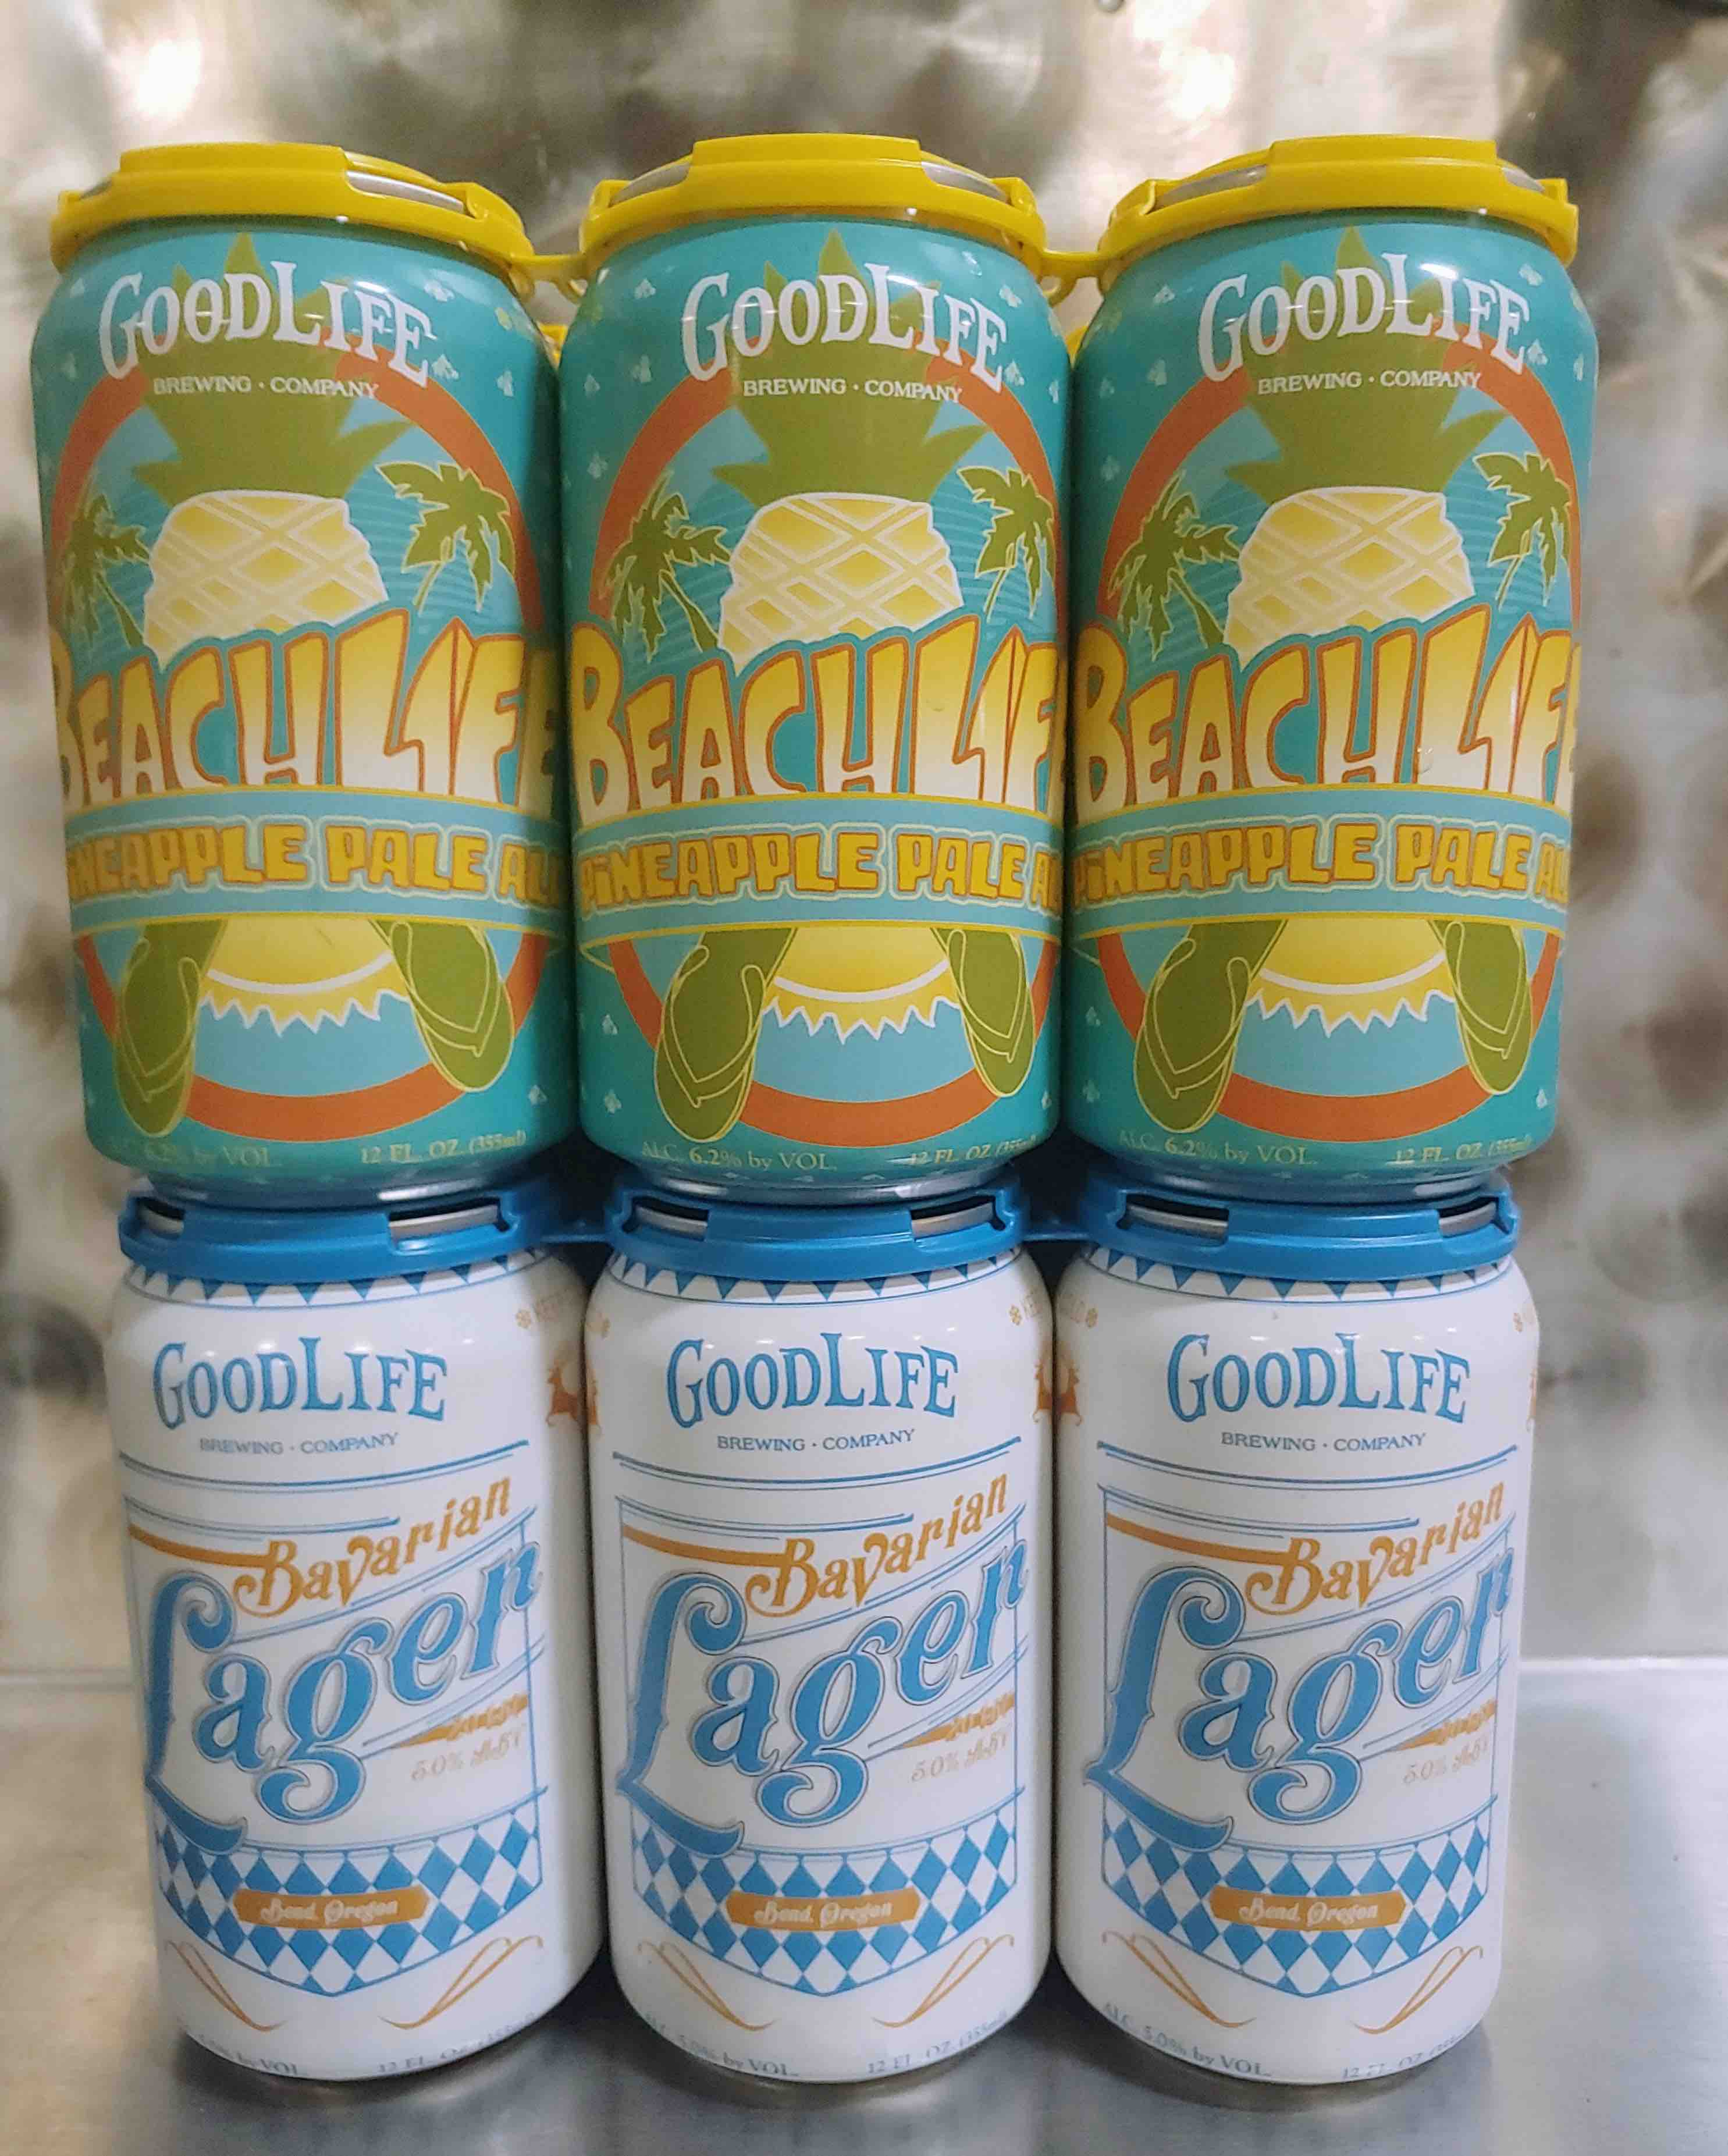 image of Beach Life Pineapple Pale Ale and Bavarian Lager courtesy of Good Life Brewing